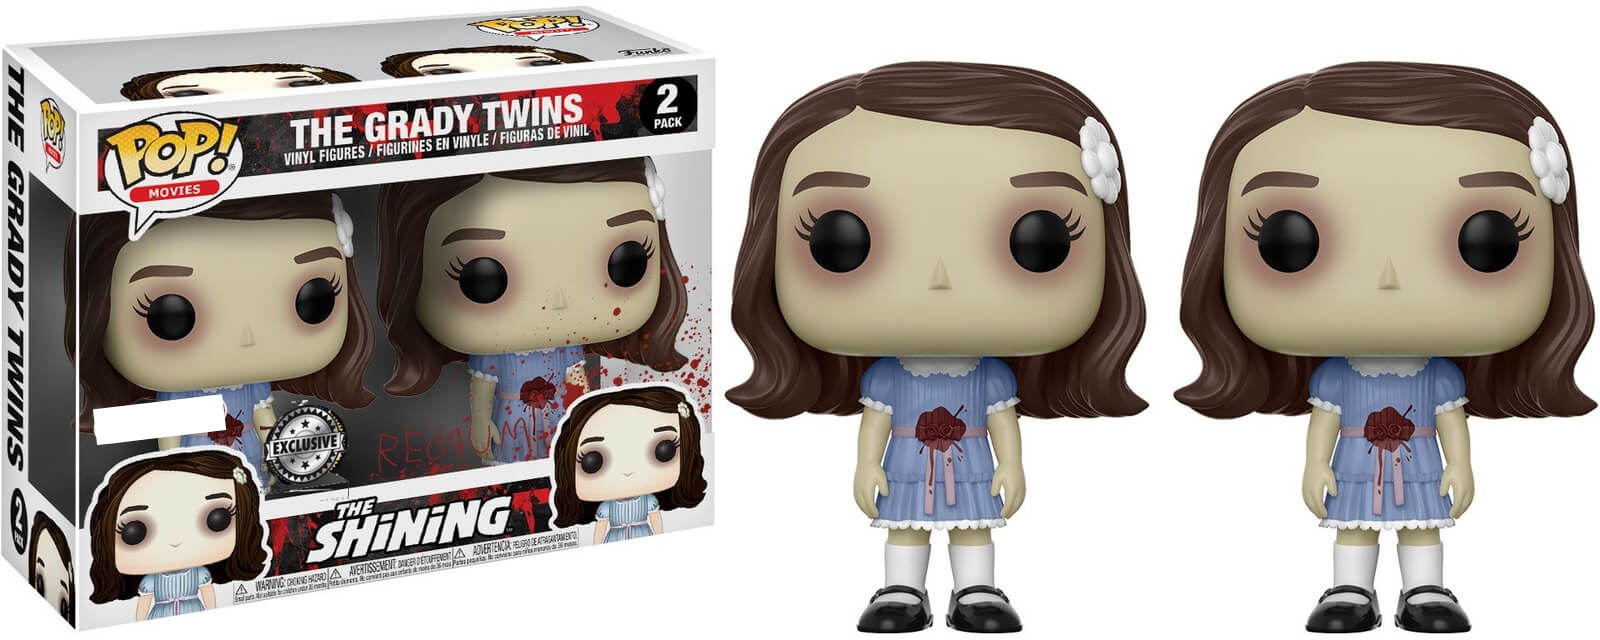 Funko Pop Shining The Grady Twins Chase 2 Pack